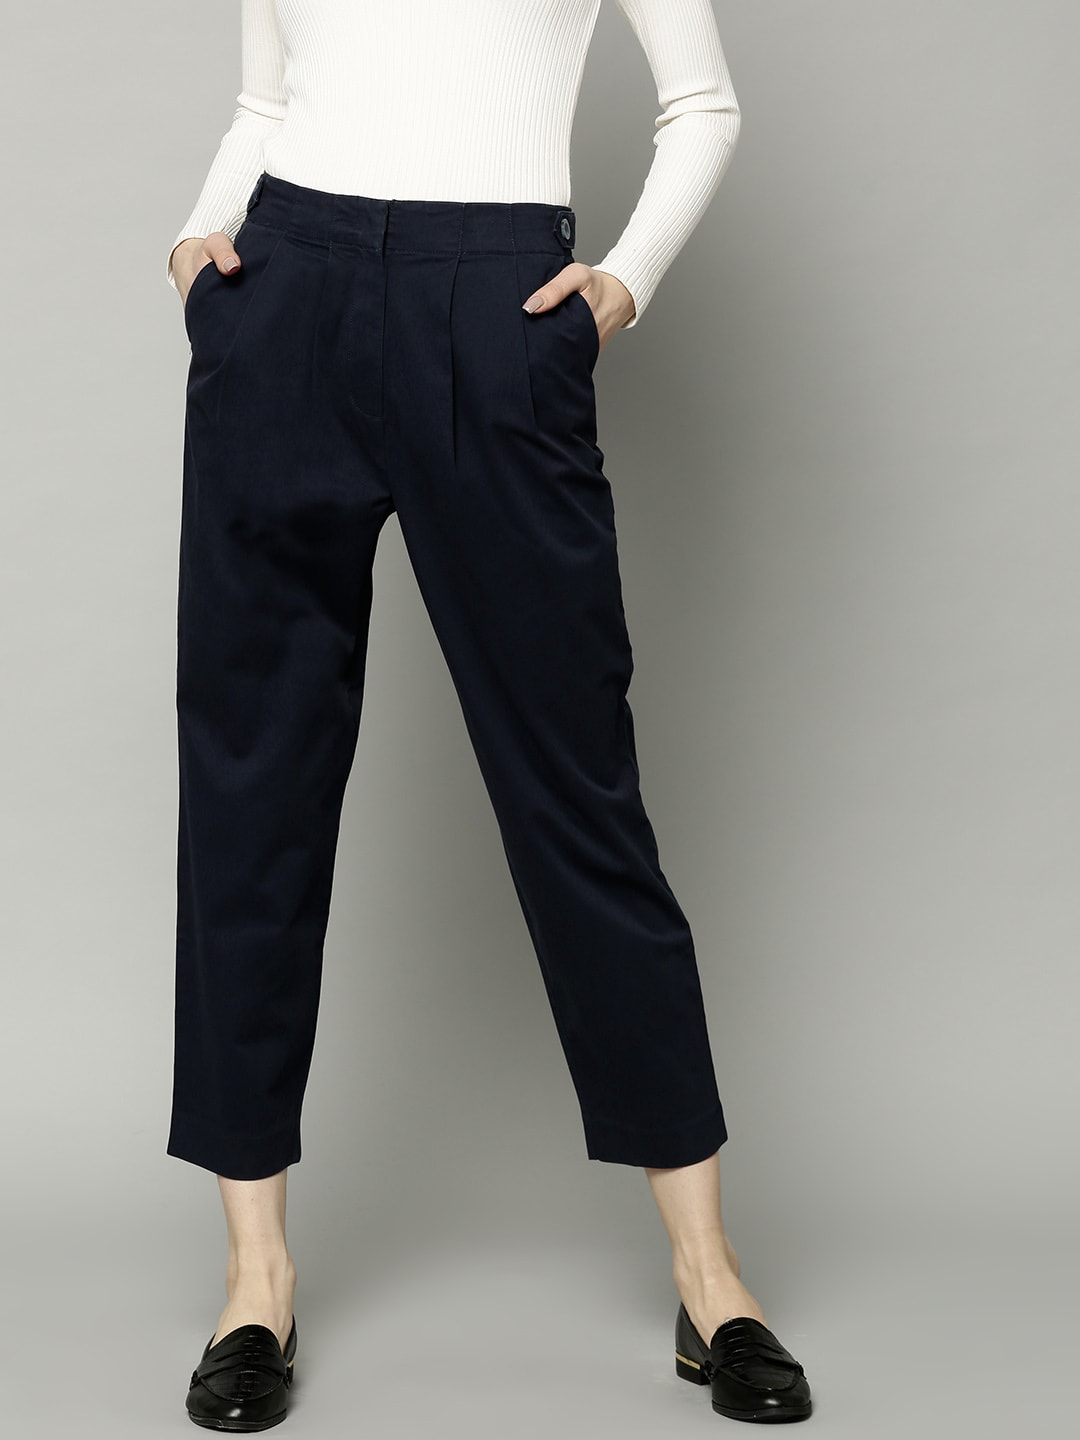 33cb748ea63 Marks & Spencer Women Navy Blue Regular Fit Solid Regular Trousers